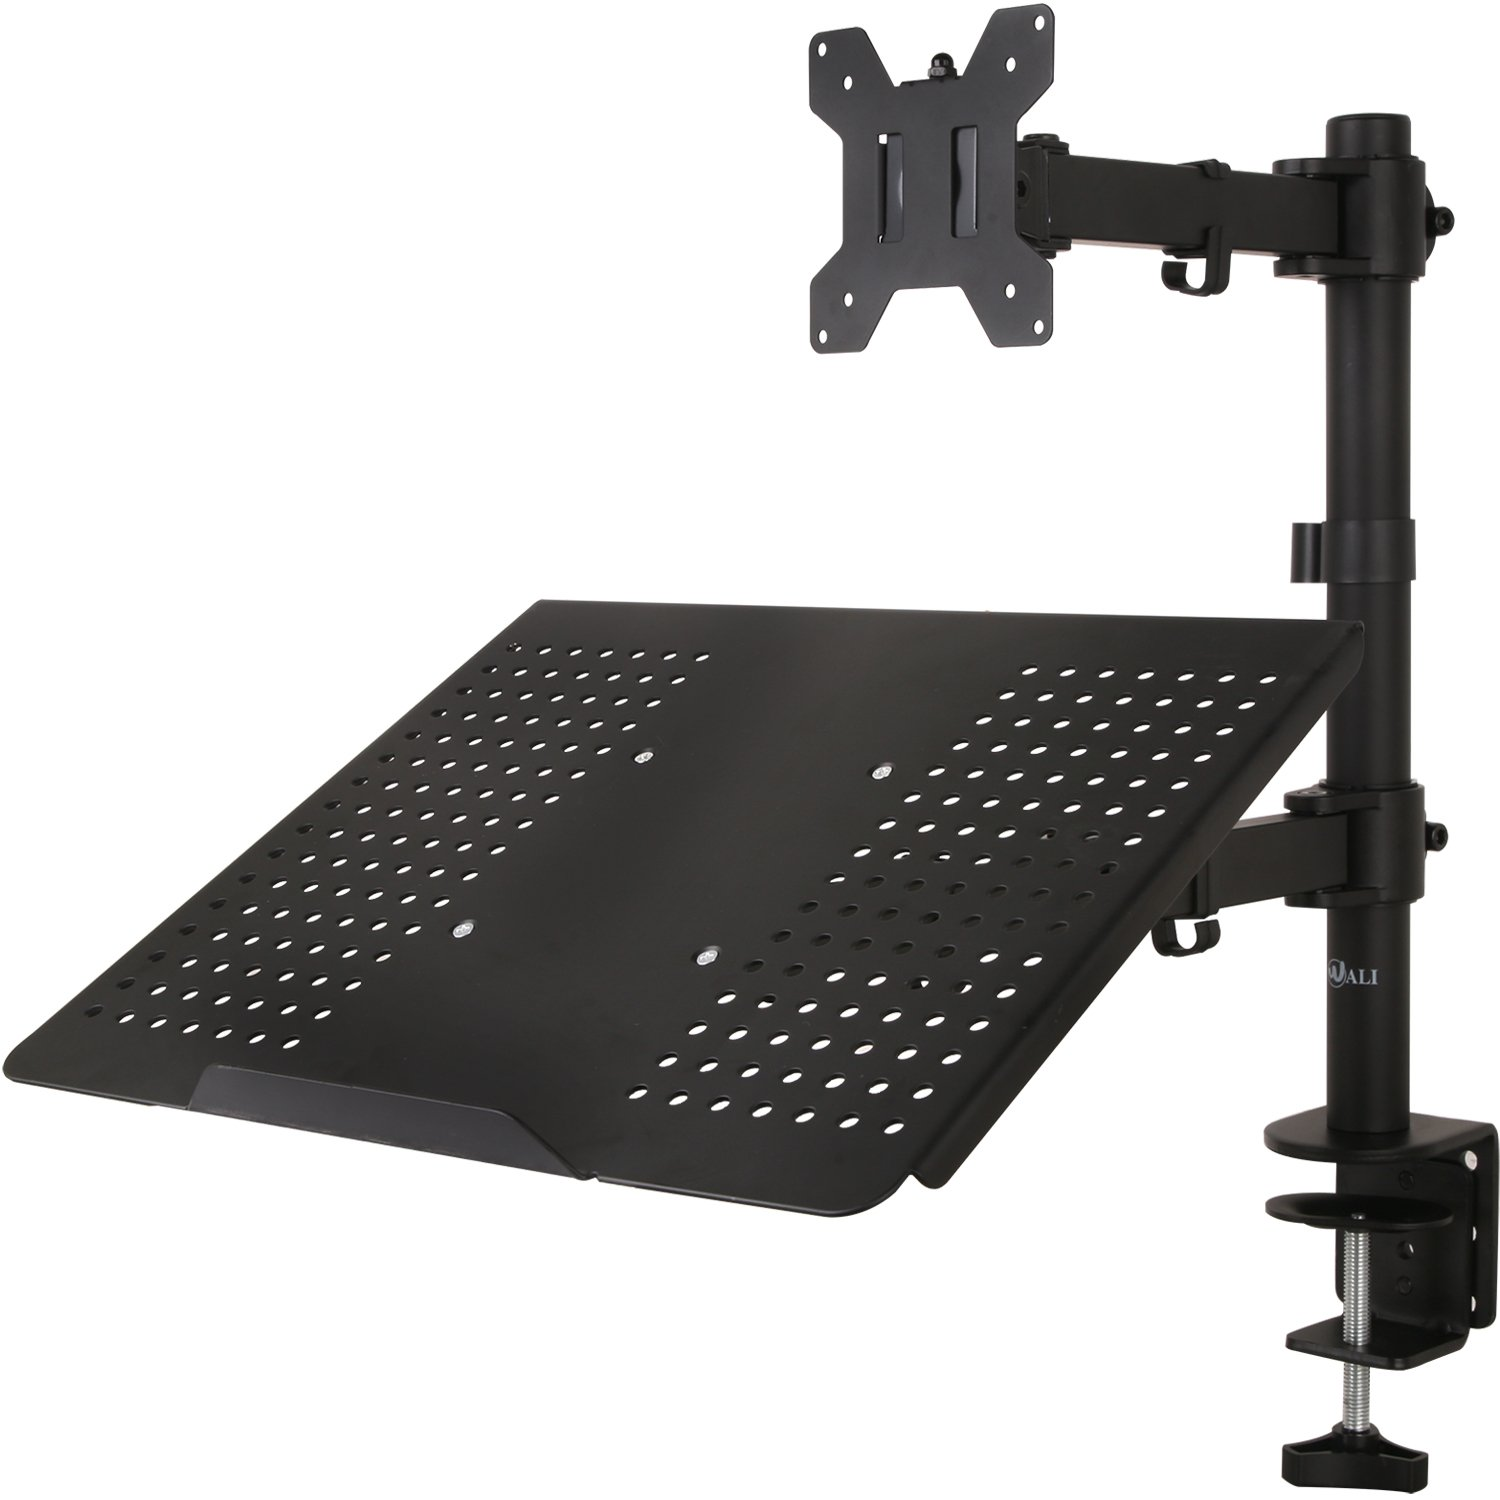 "WALI Single LCD Monitor Desk Mount Fully Adjustable Stand with Extra Laptop Tray for One Laptop Notebook up to 17"" and One Screen up to 27"", 22 lbs. Weight Capacity (M001LP), Black"